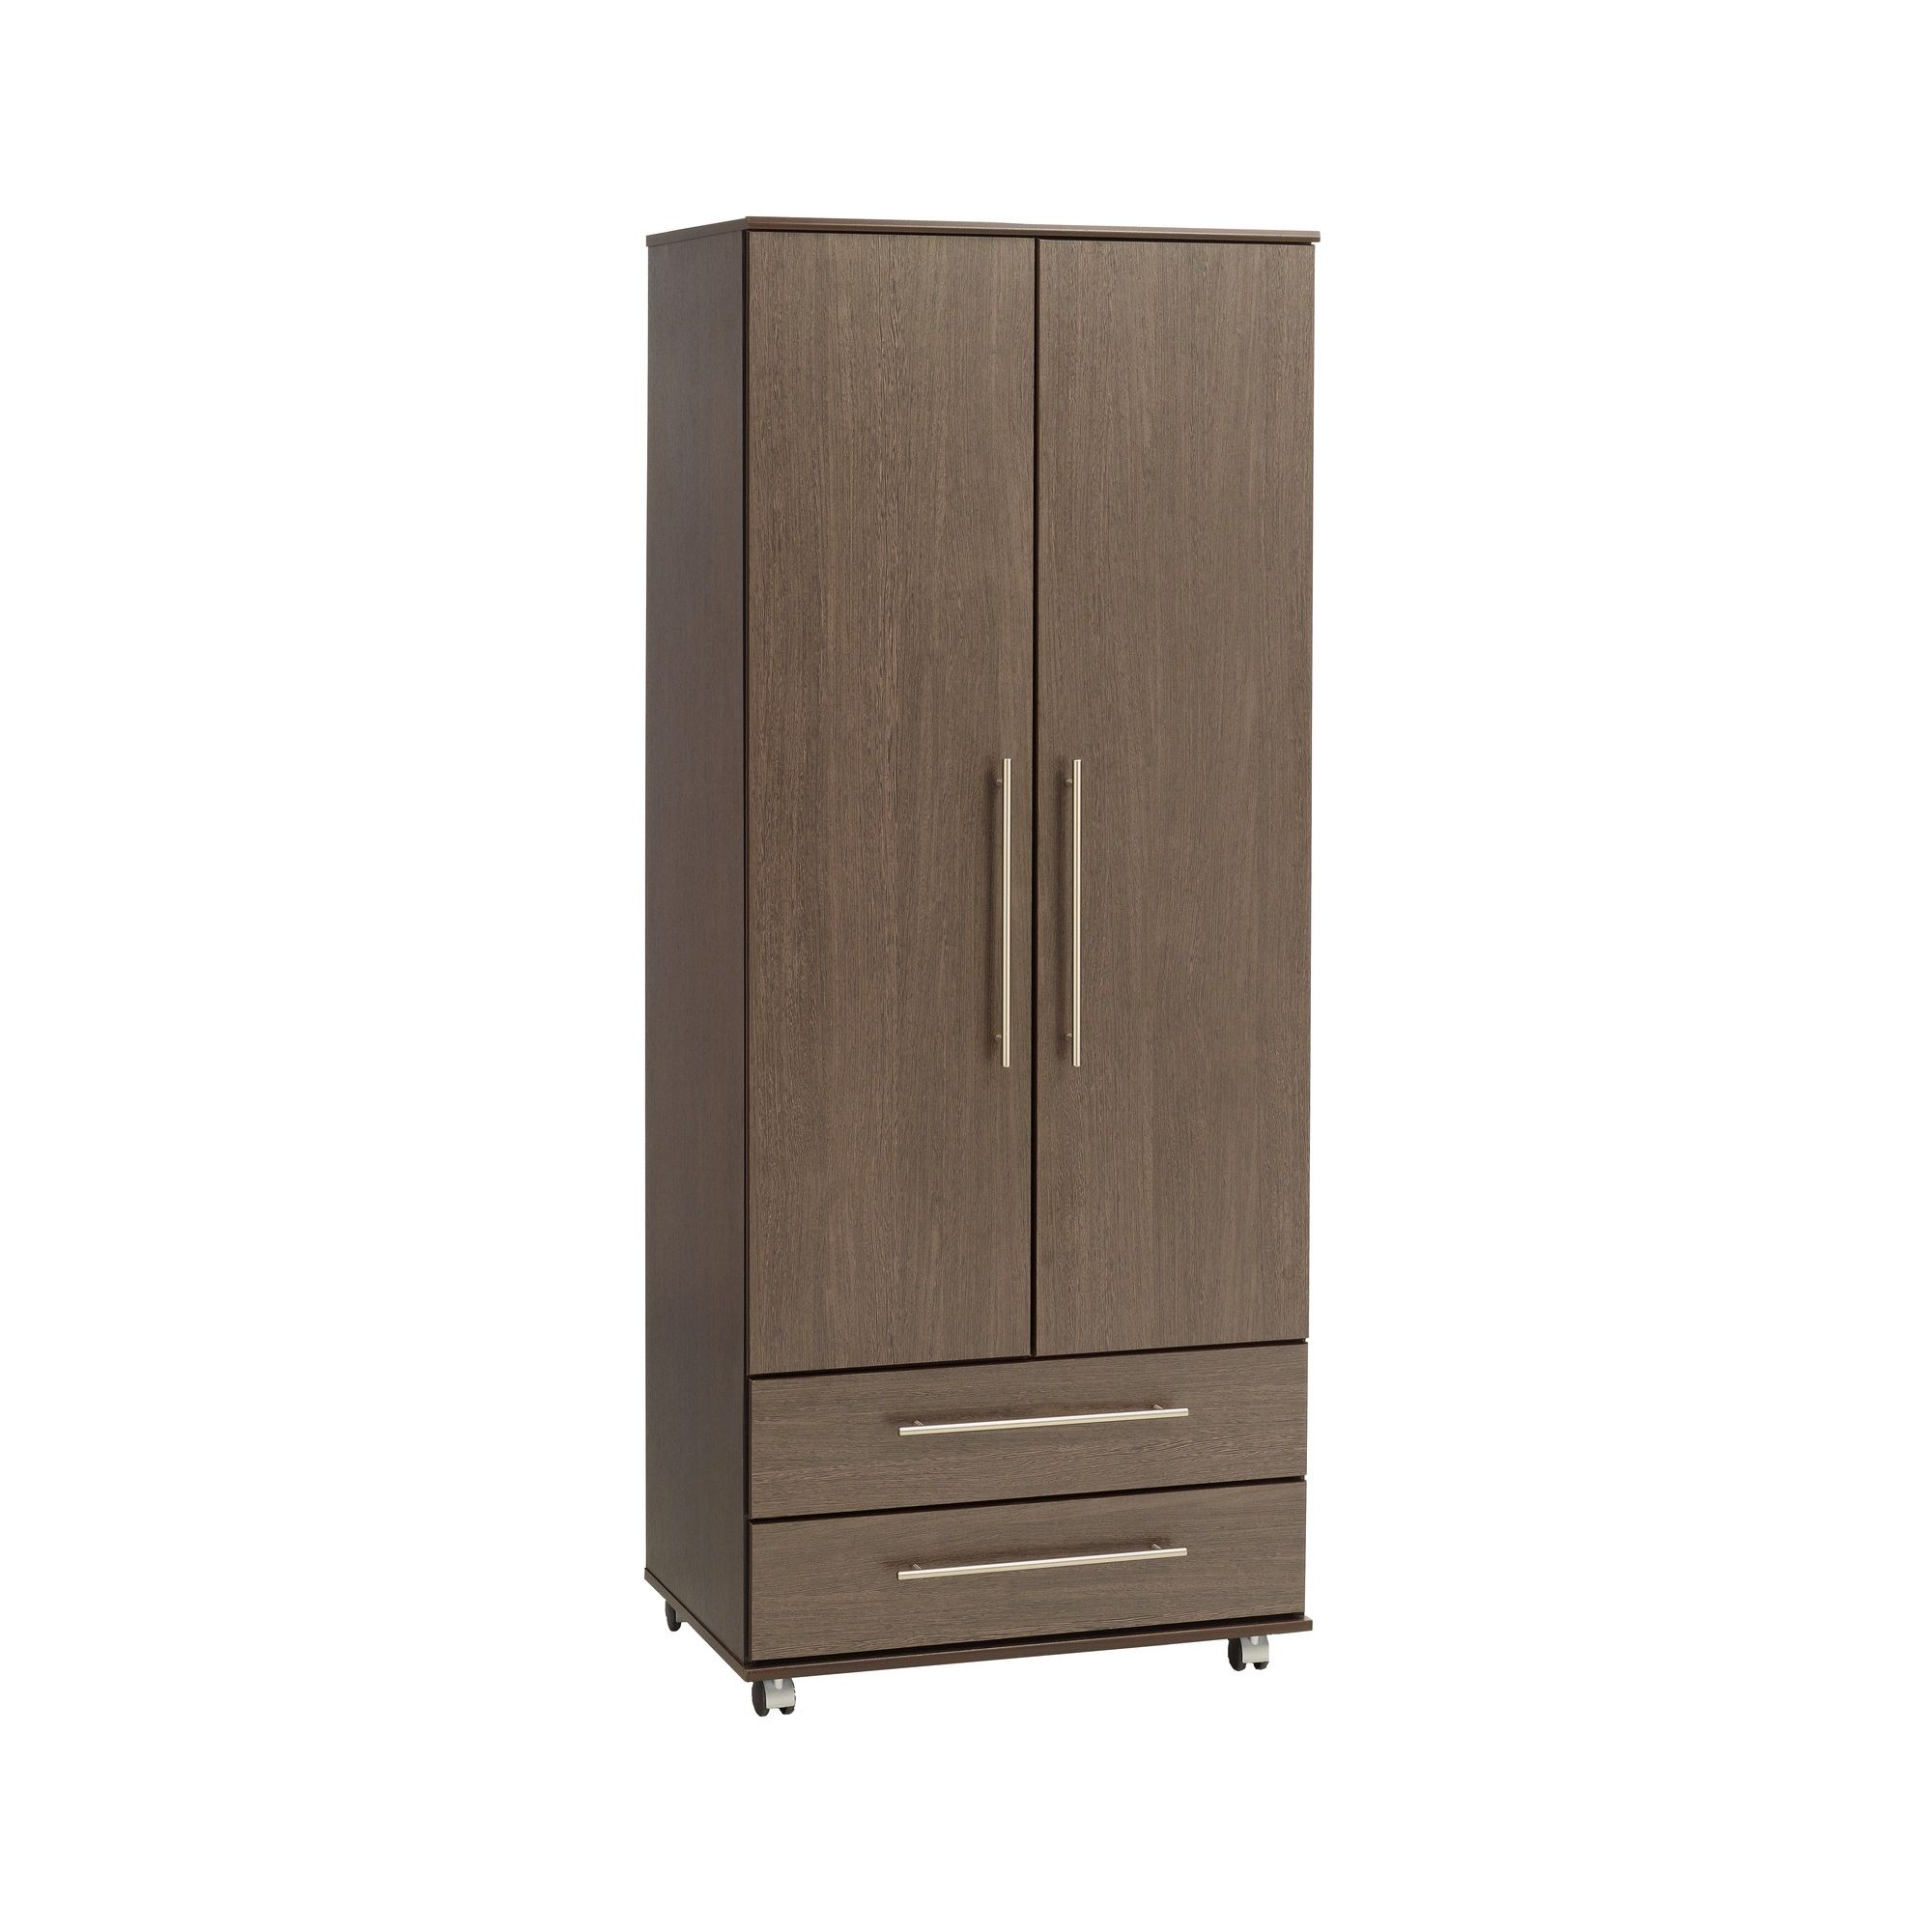 Ideal Furniture New York Combi Wardrobe - American Walnut at Tesco Direct